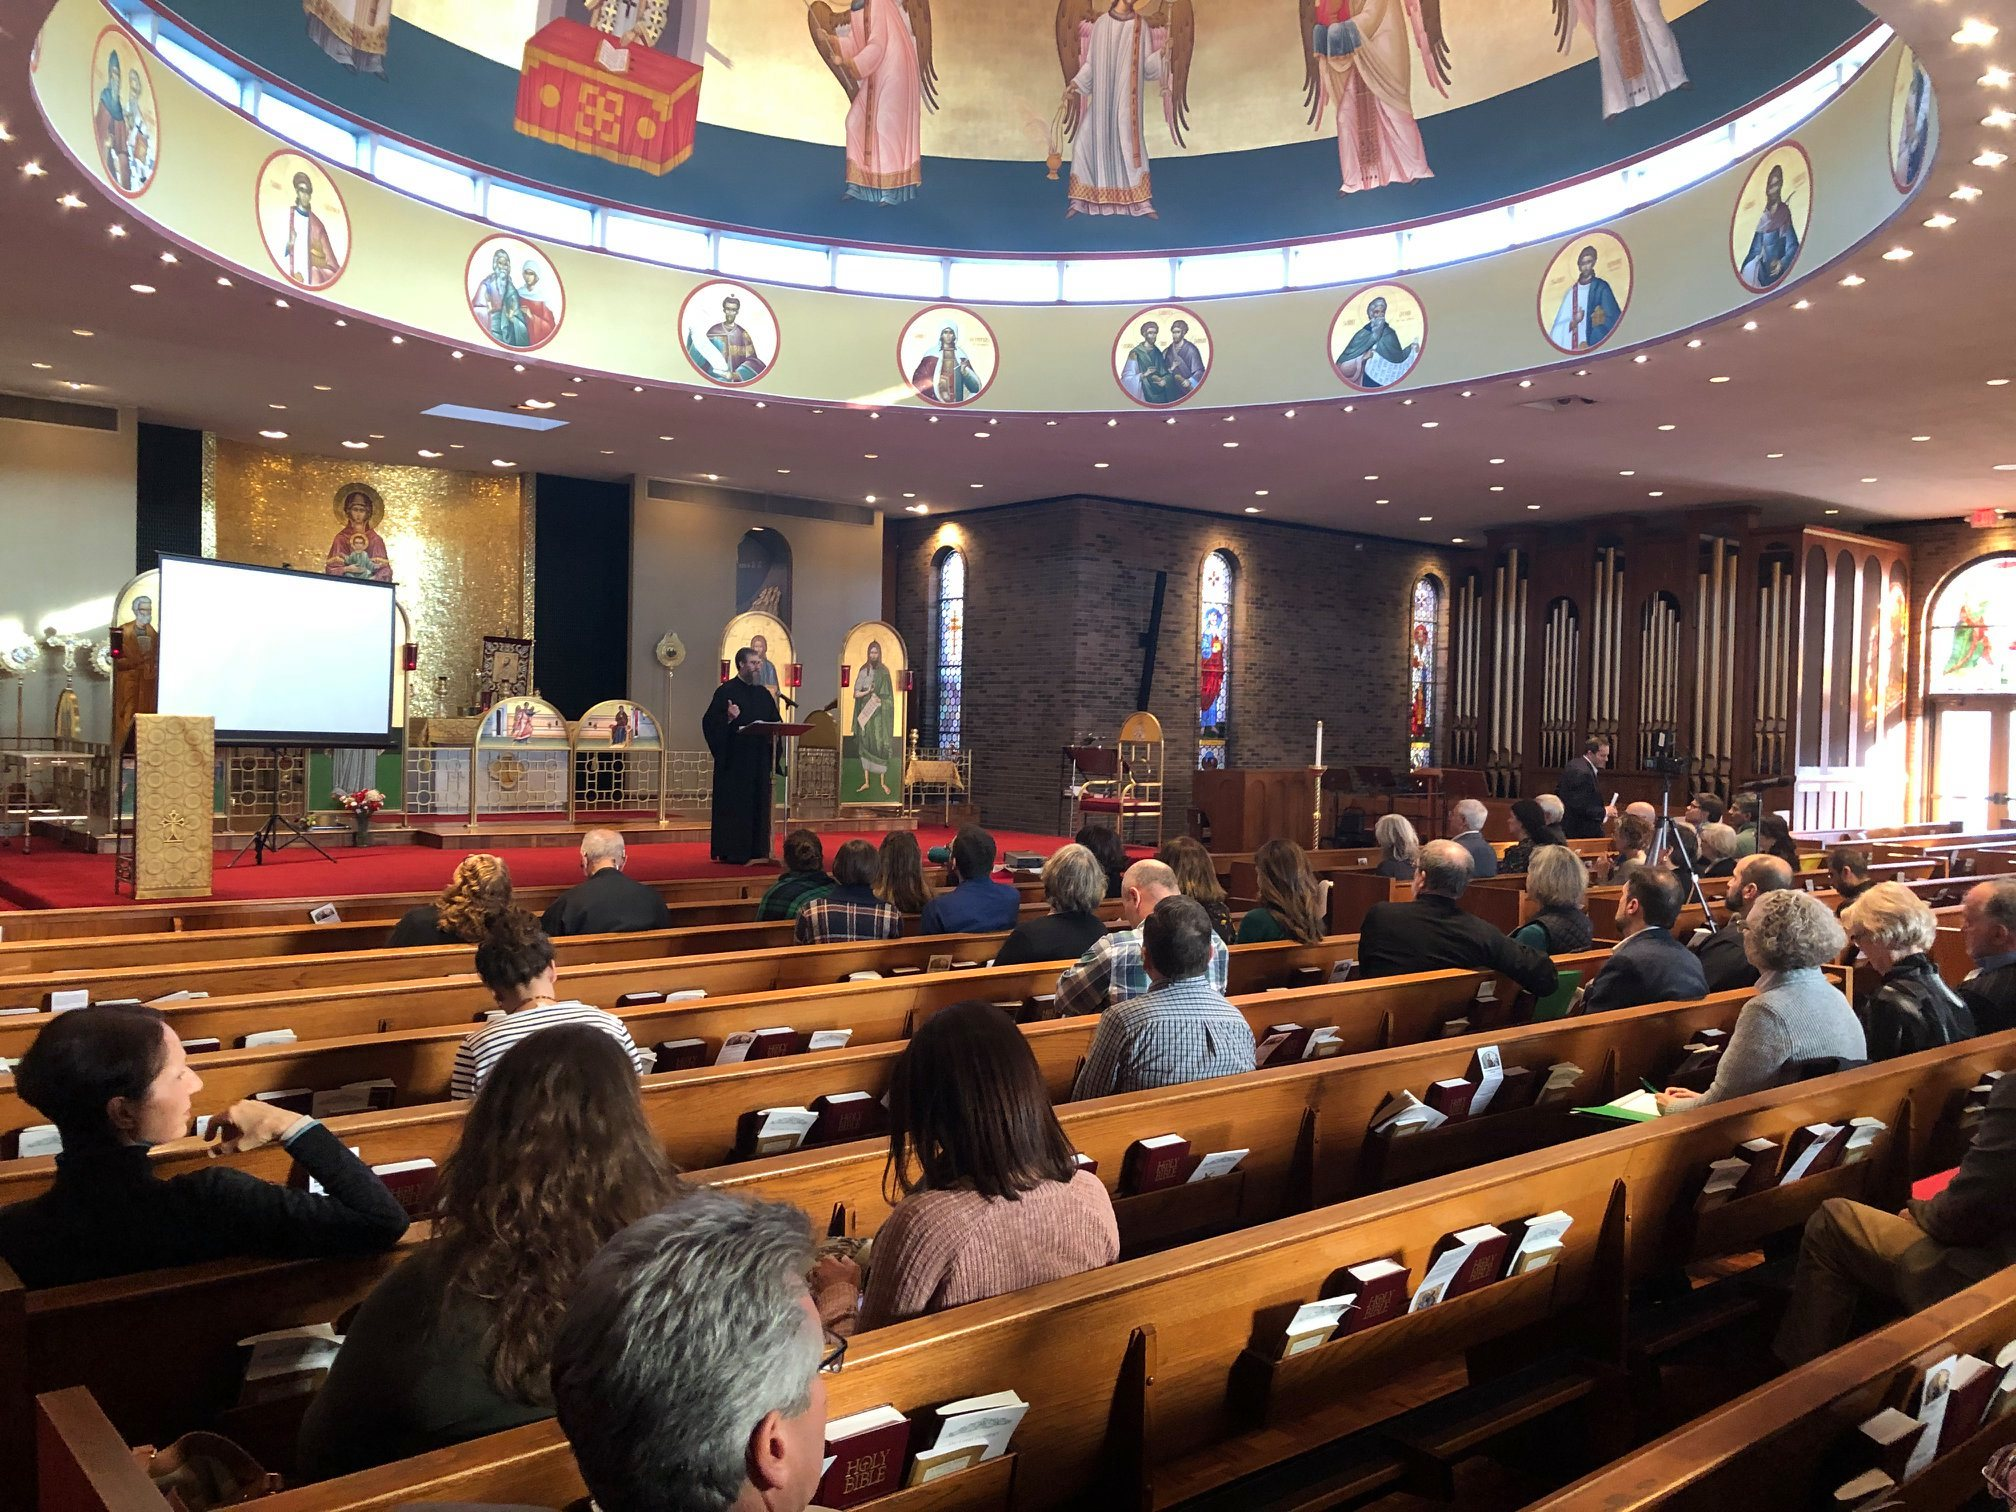 Plenary speech in crowded cathedral